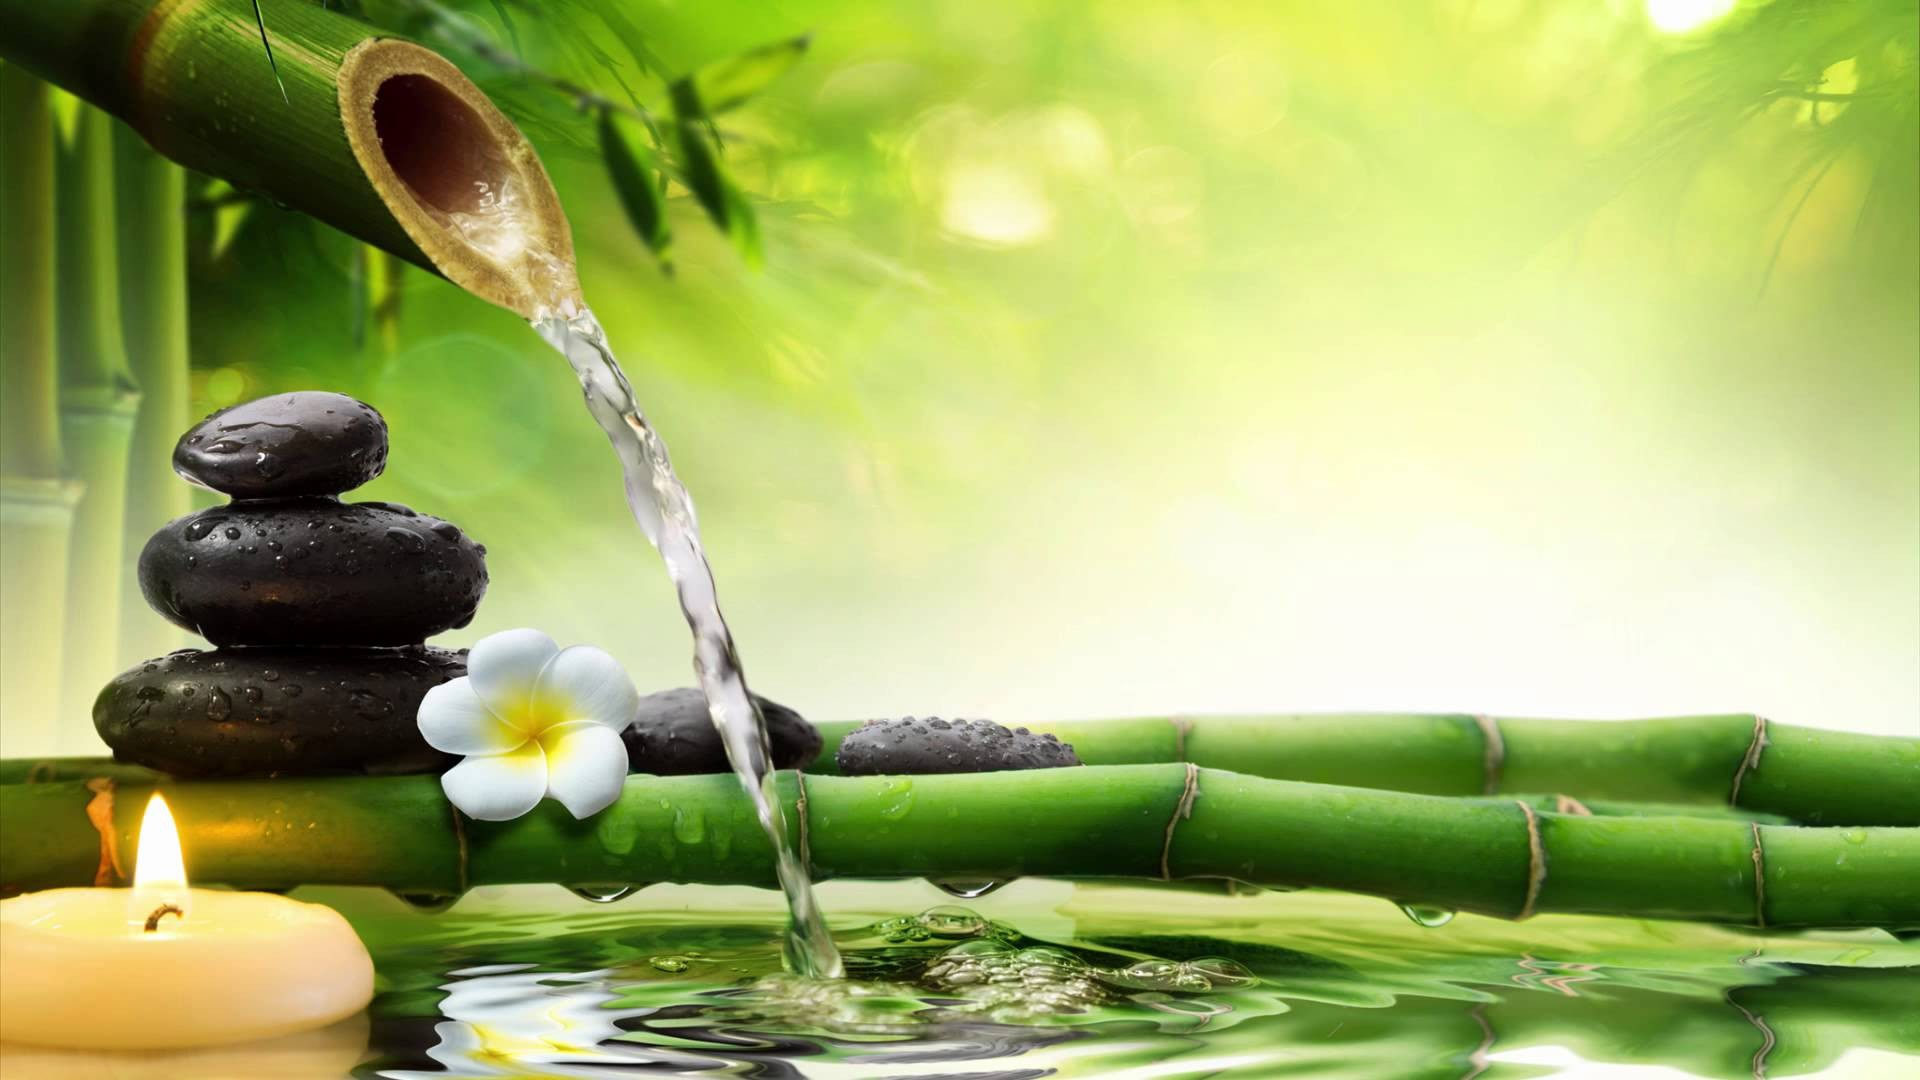 Spa background ·① Download free cool HD backgrounds for ...